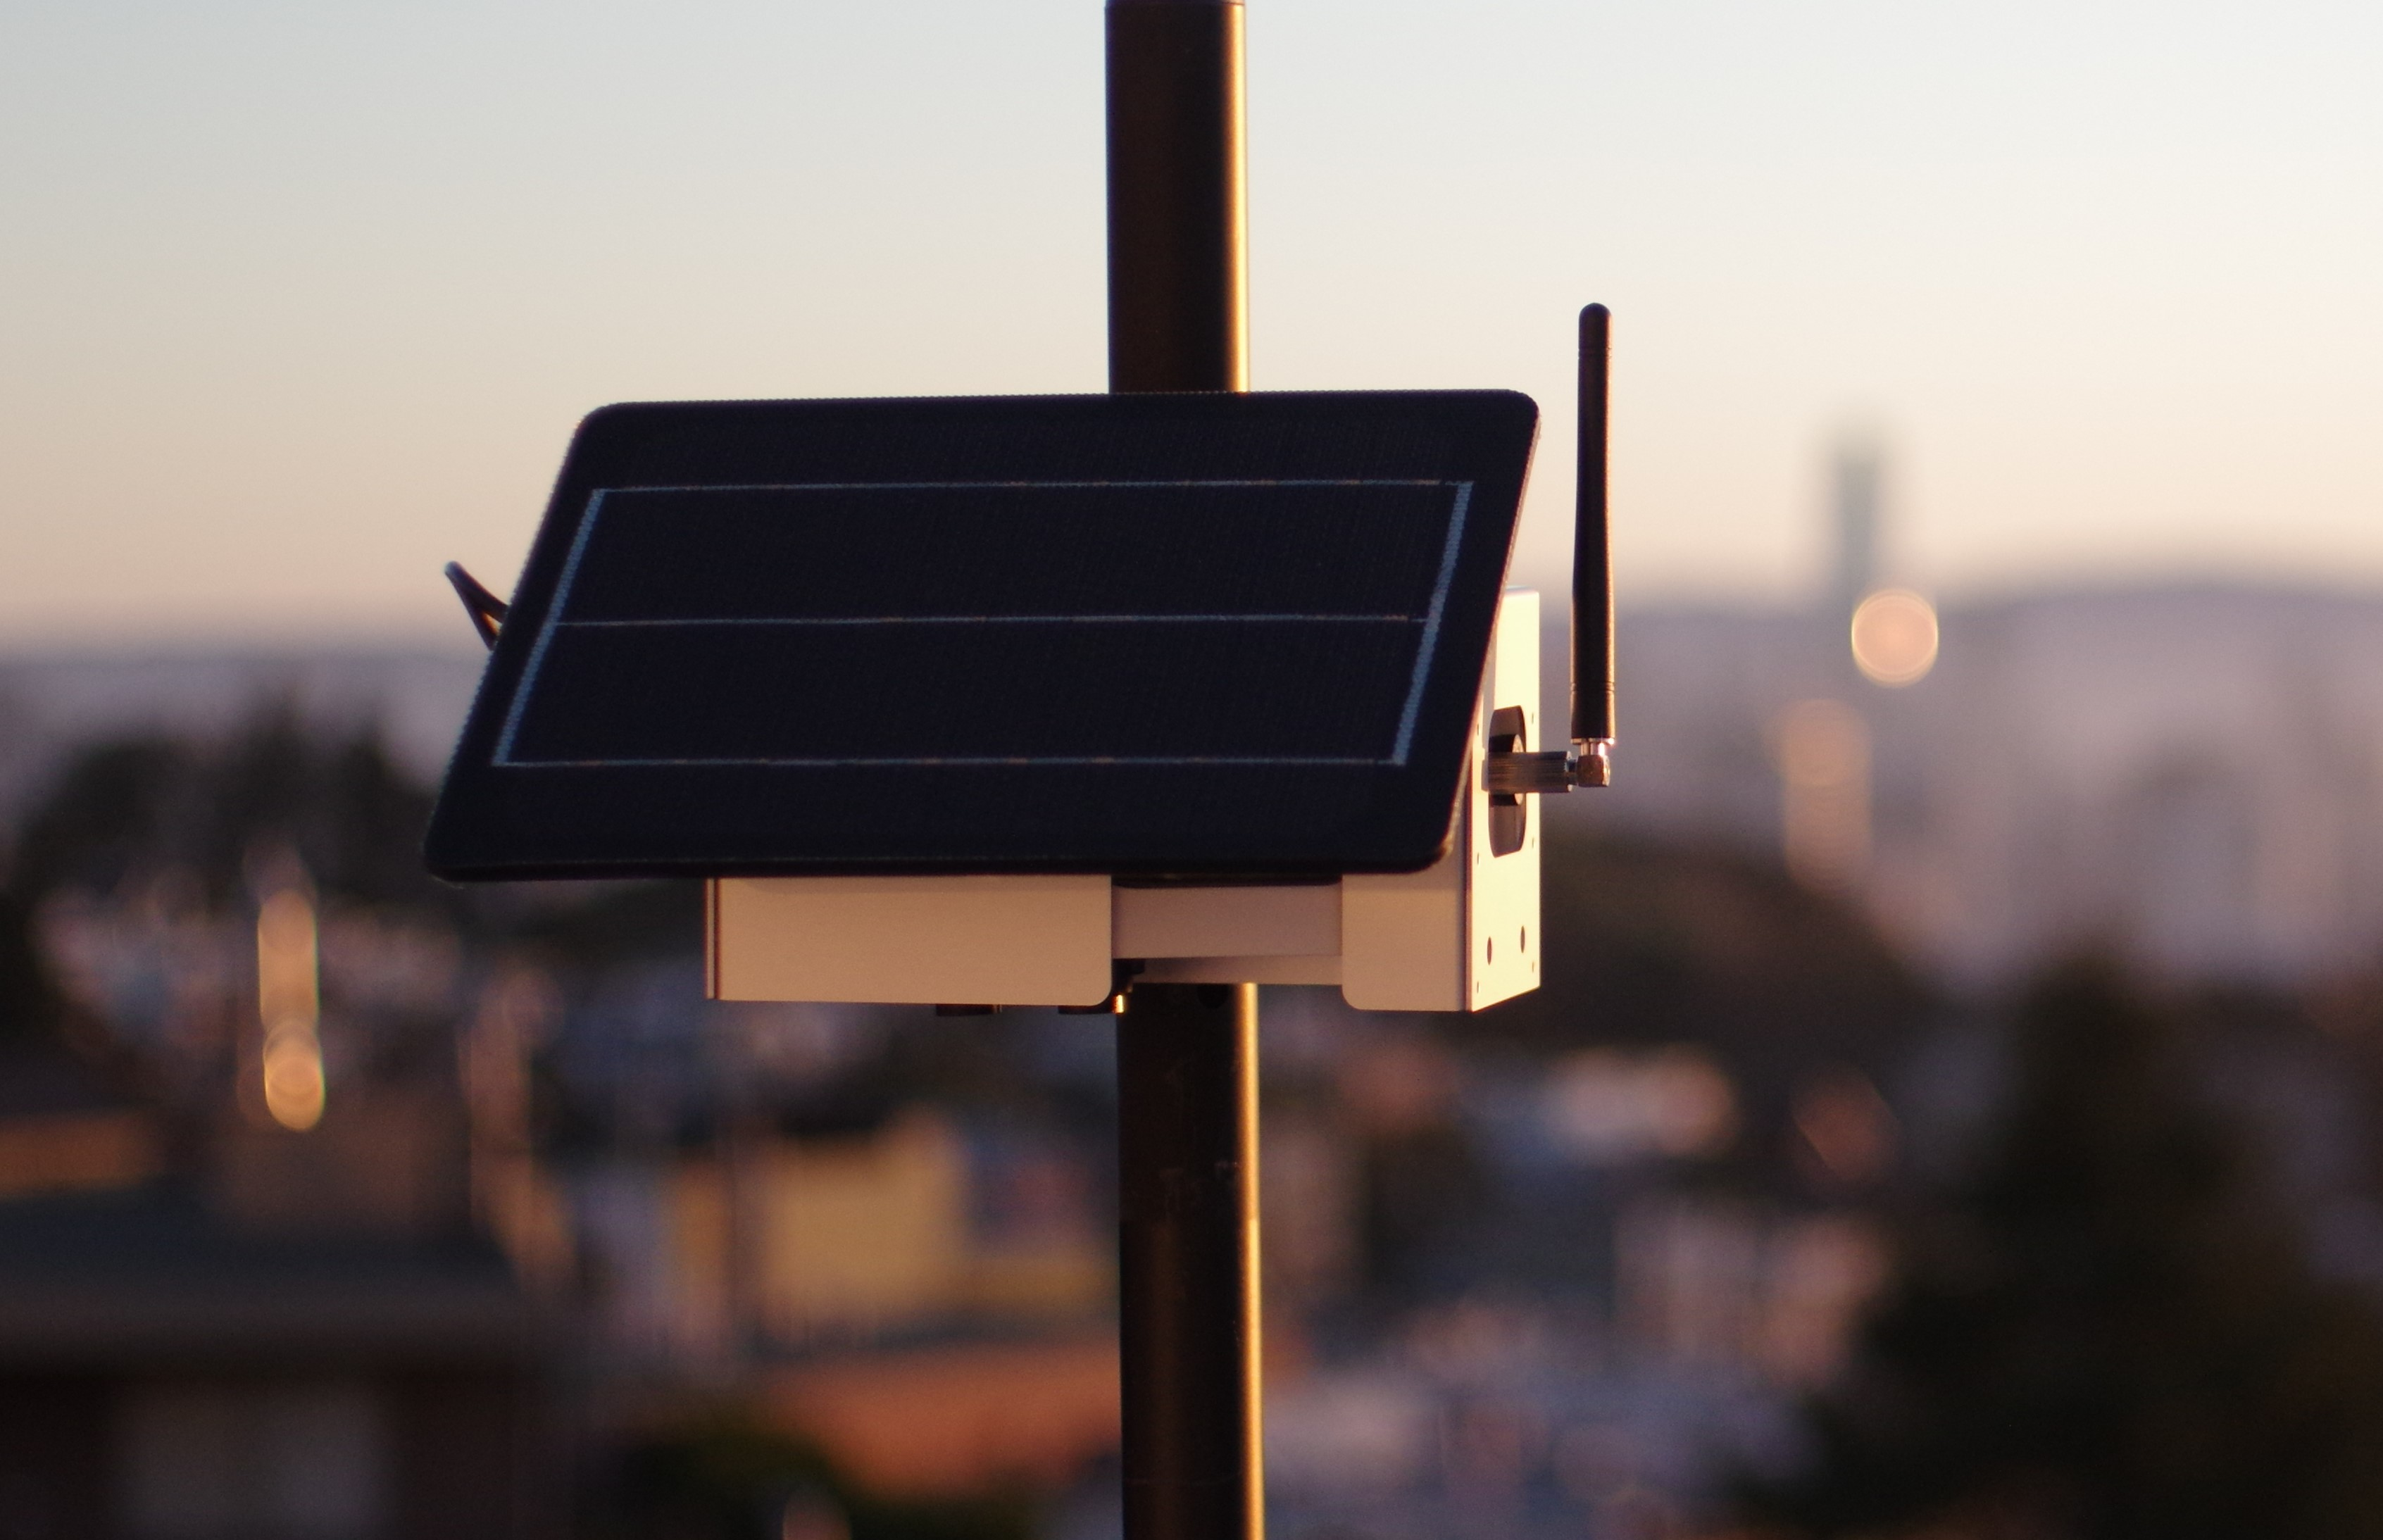 A Node-S air quality monitor installed on a pole to measure pollutants in the San Francisco air.